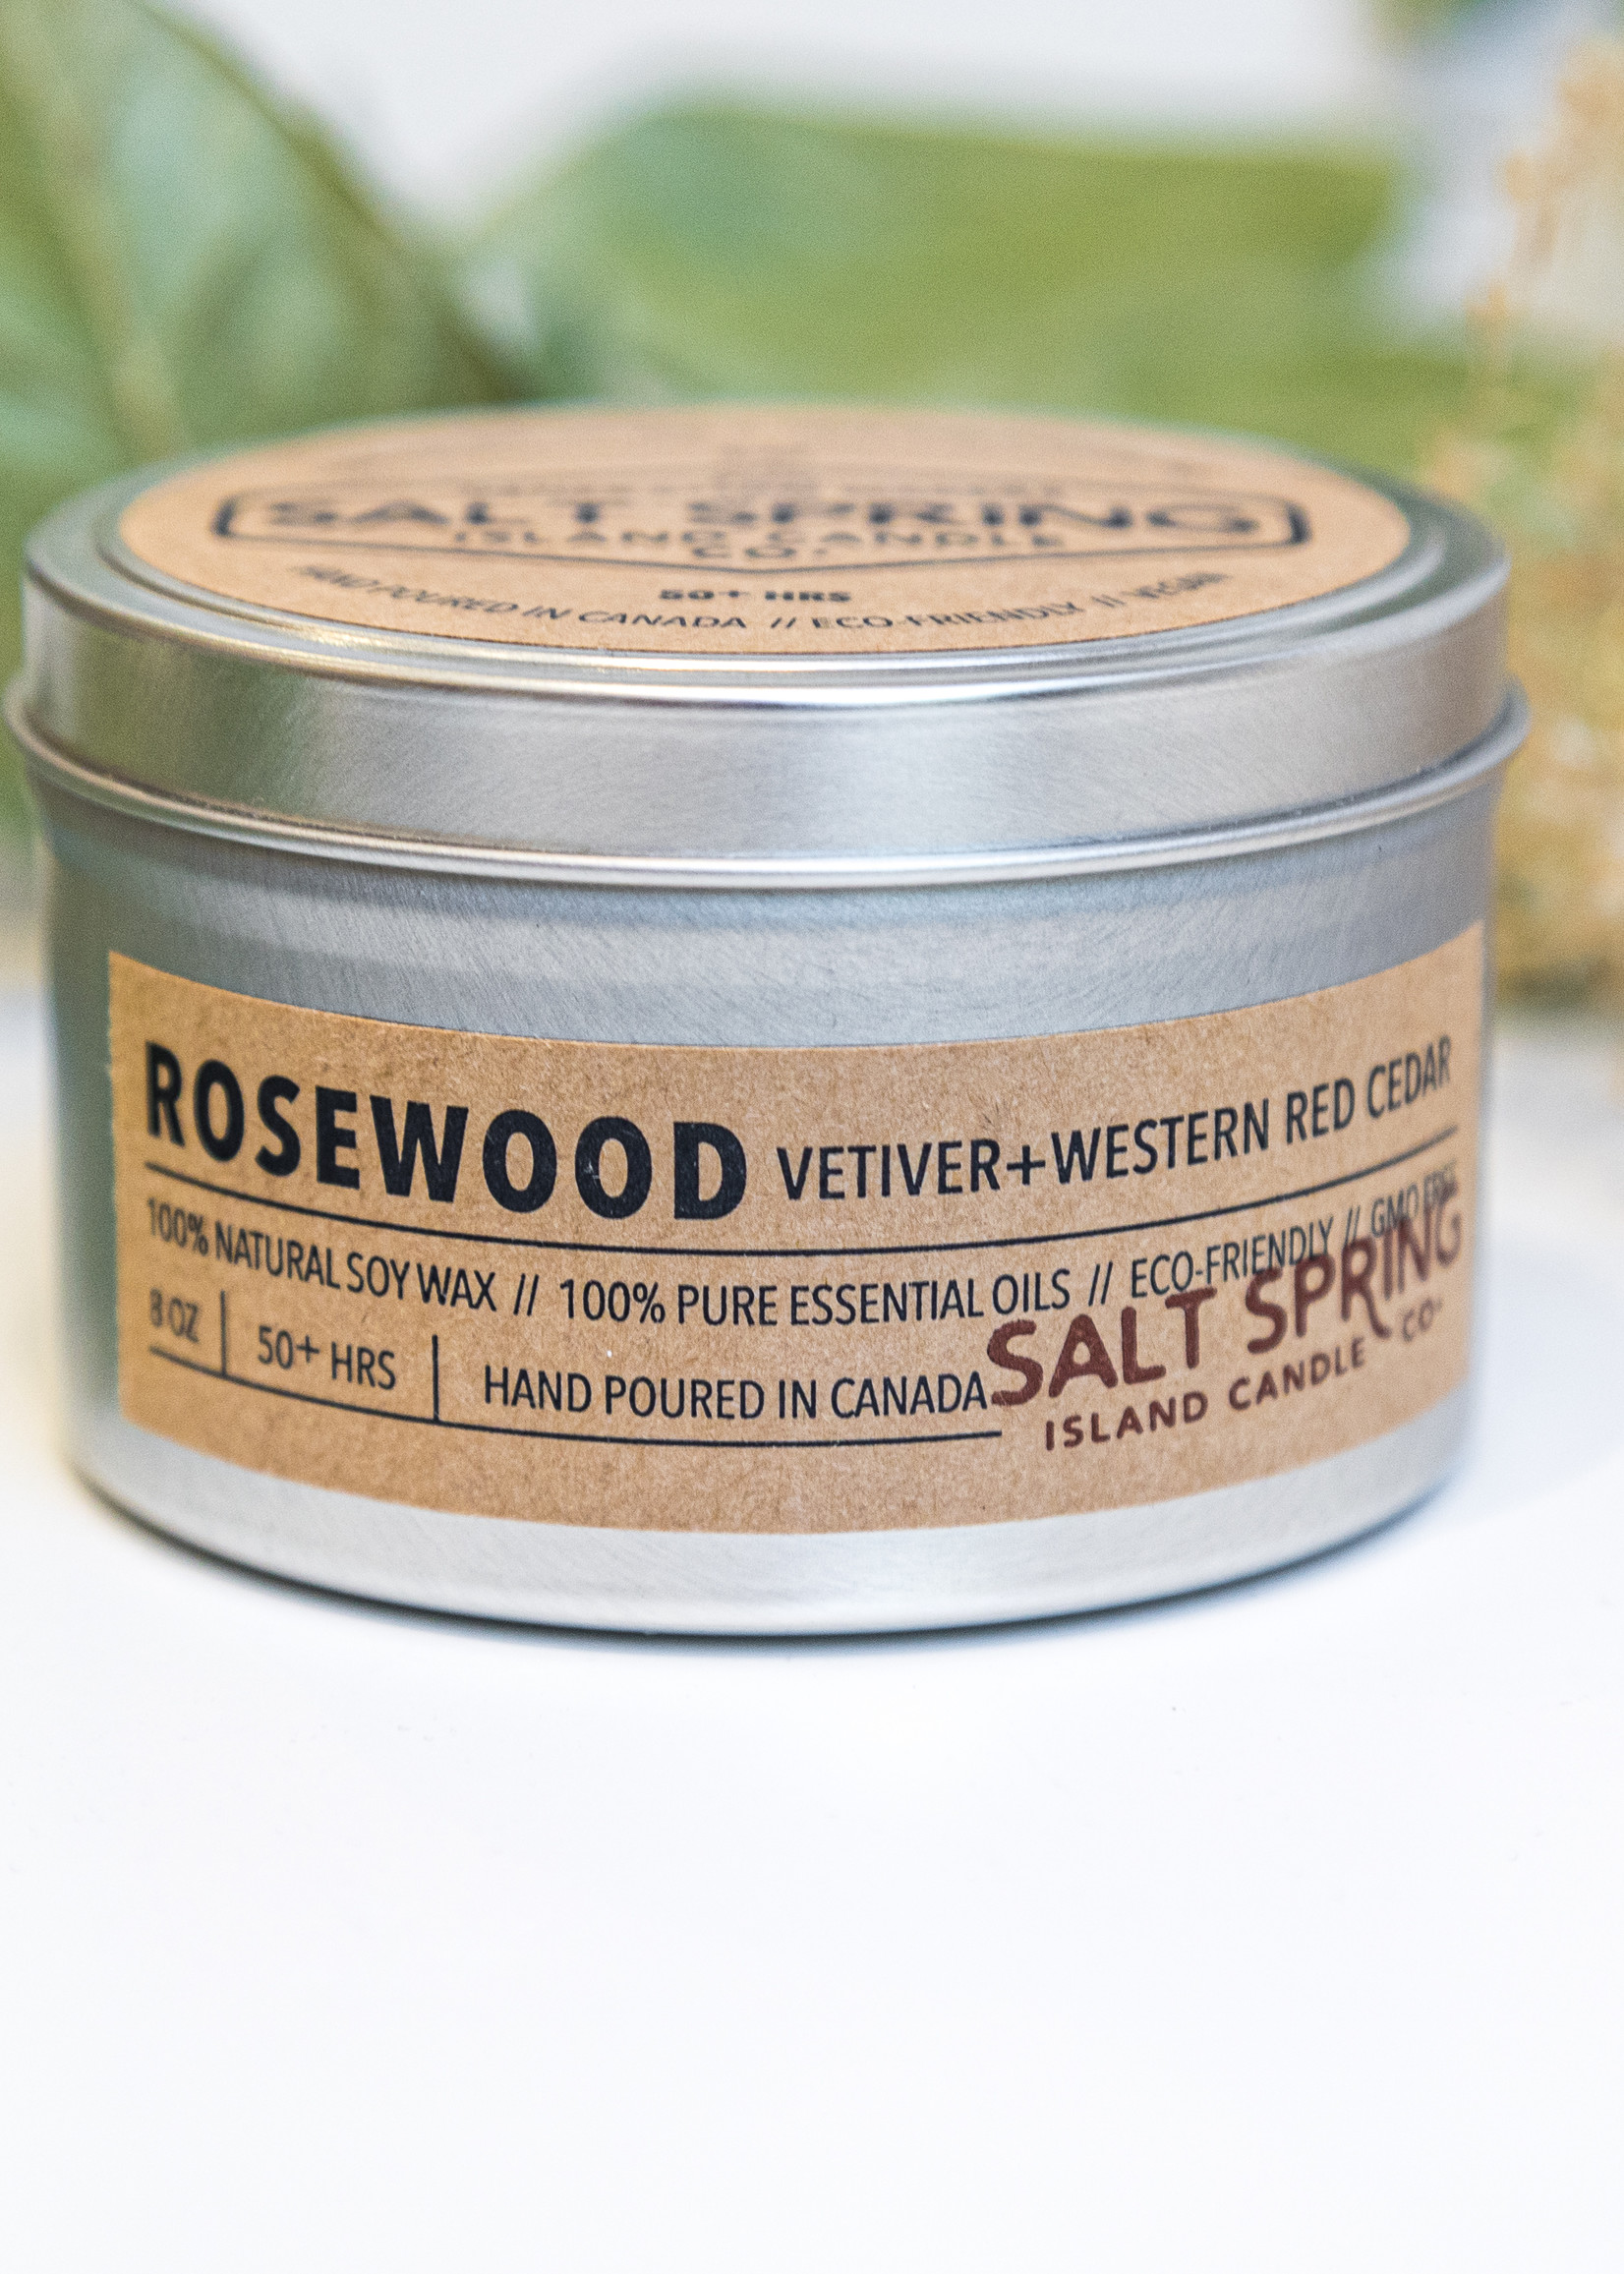 Salt Spring Island Candle Co. - Rosewood 8oz Candle